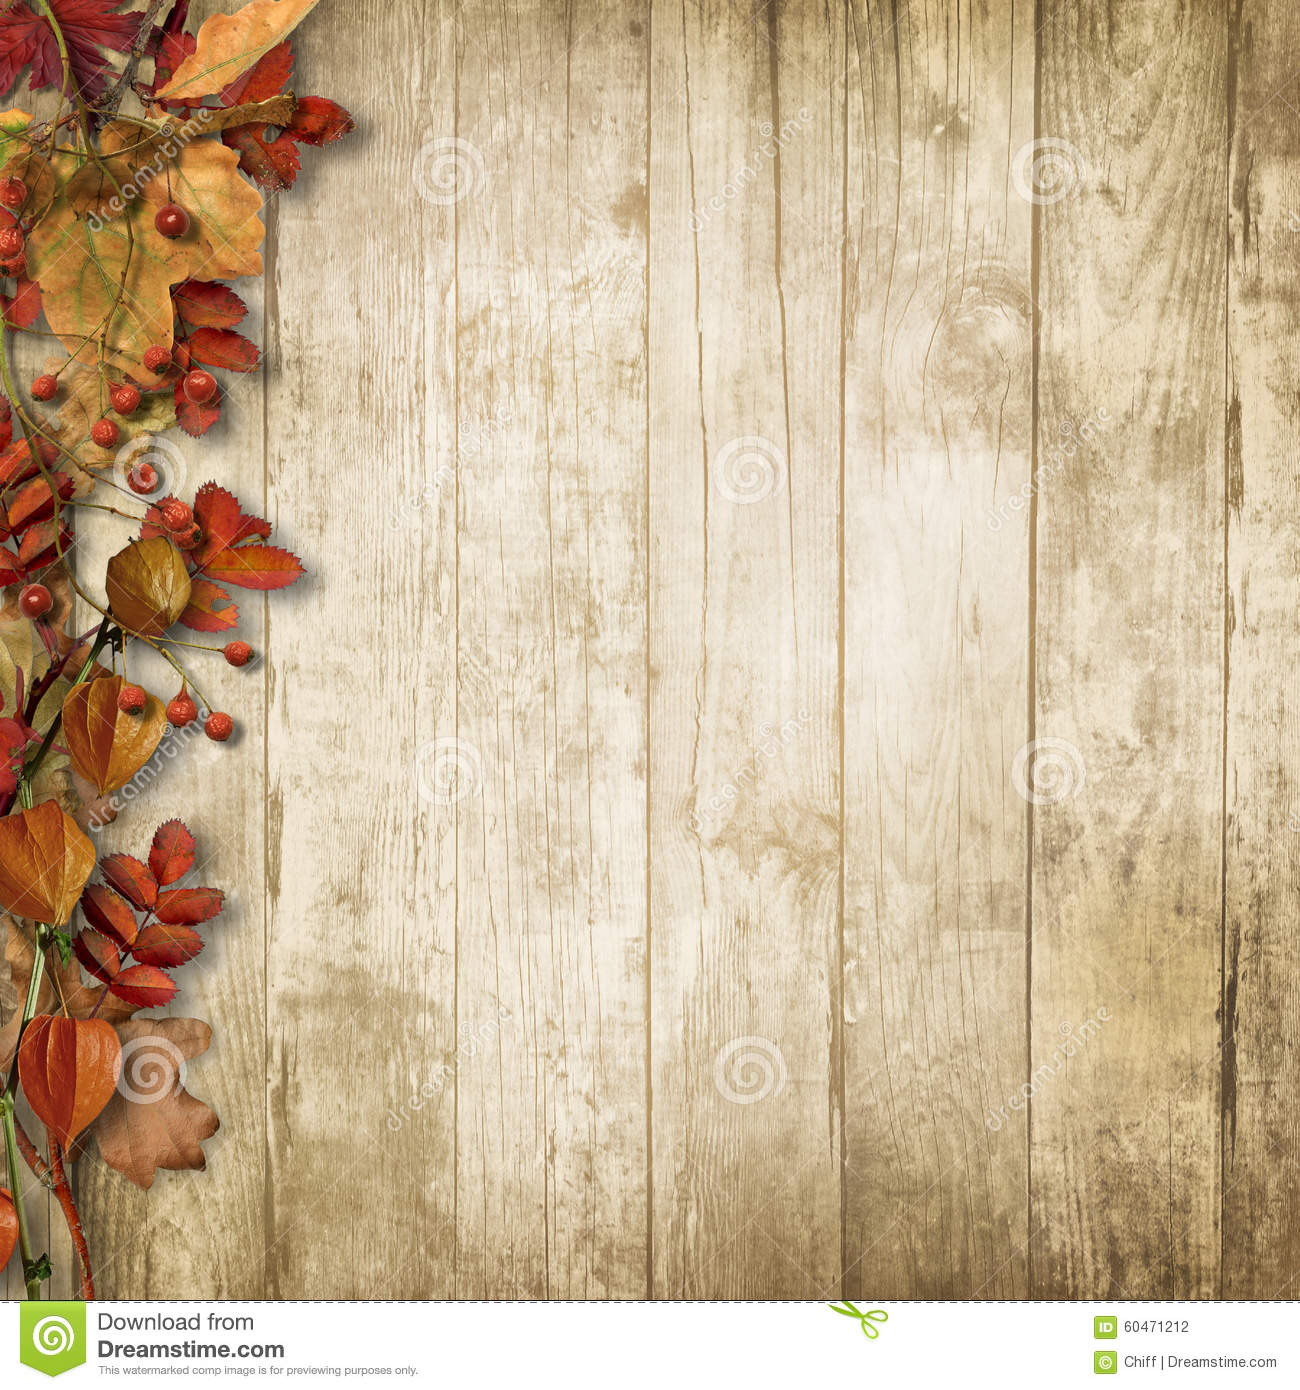 Hd Wallpaper Texture Fall Harvest Vintage Wooden Background With Autumn Rowan And Leaves